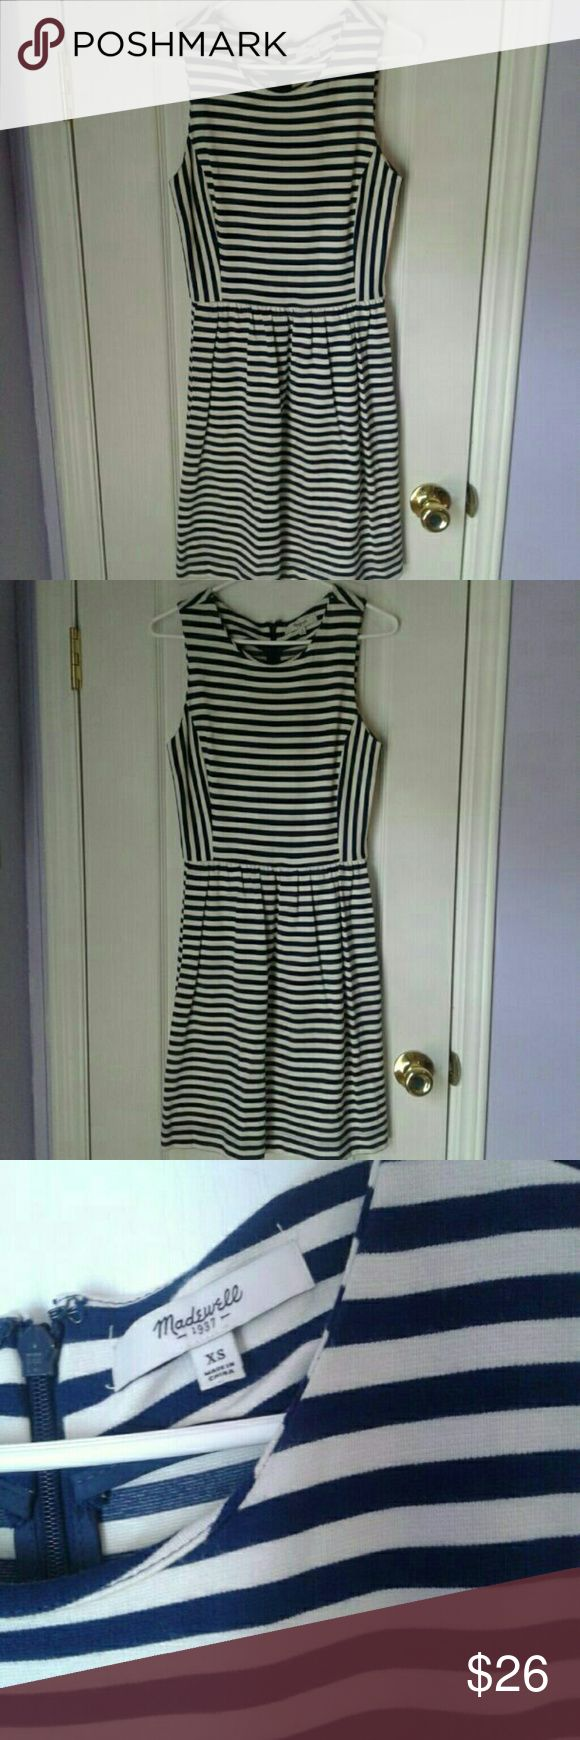 Madewell Sleeveless Striped Dress Women's Madewell by J. Crew navy and white/cream striped dress. Gently worn, light wear from wash. No stains or holes. Zips up back. 88% viscose 10% nylon 2 % spandex Summer Beach nautical Madewell Dresses